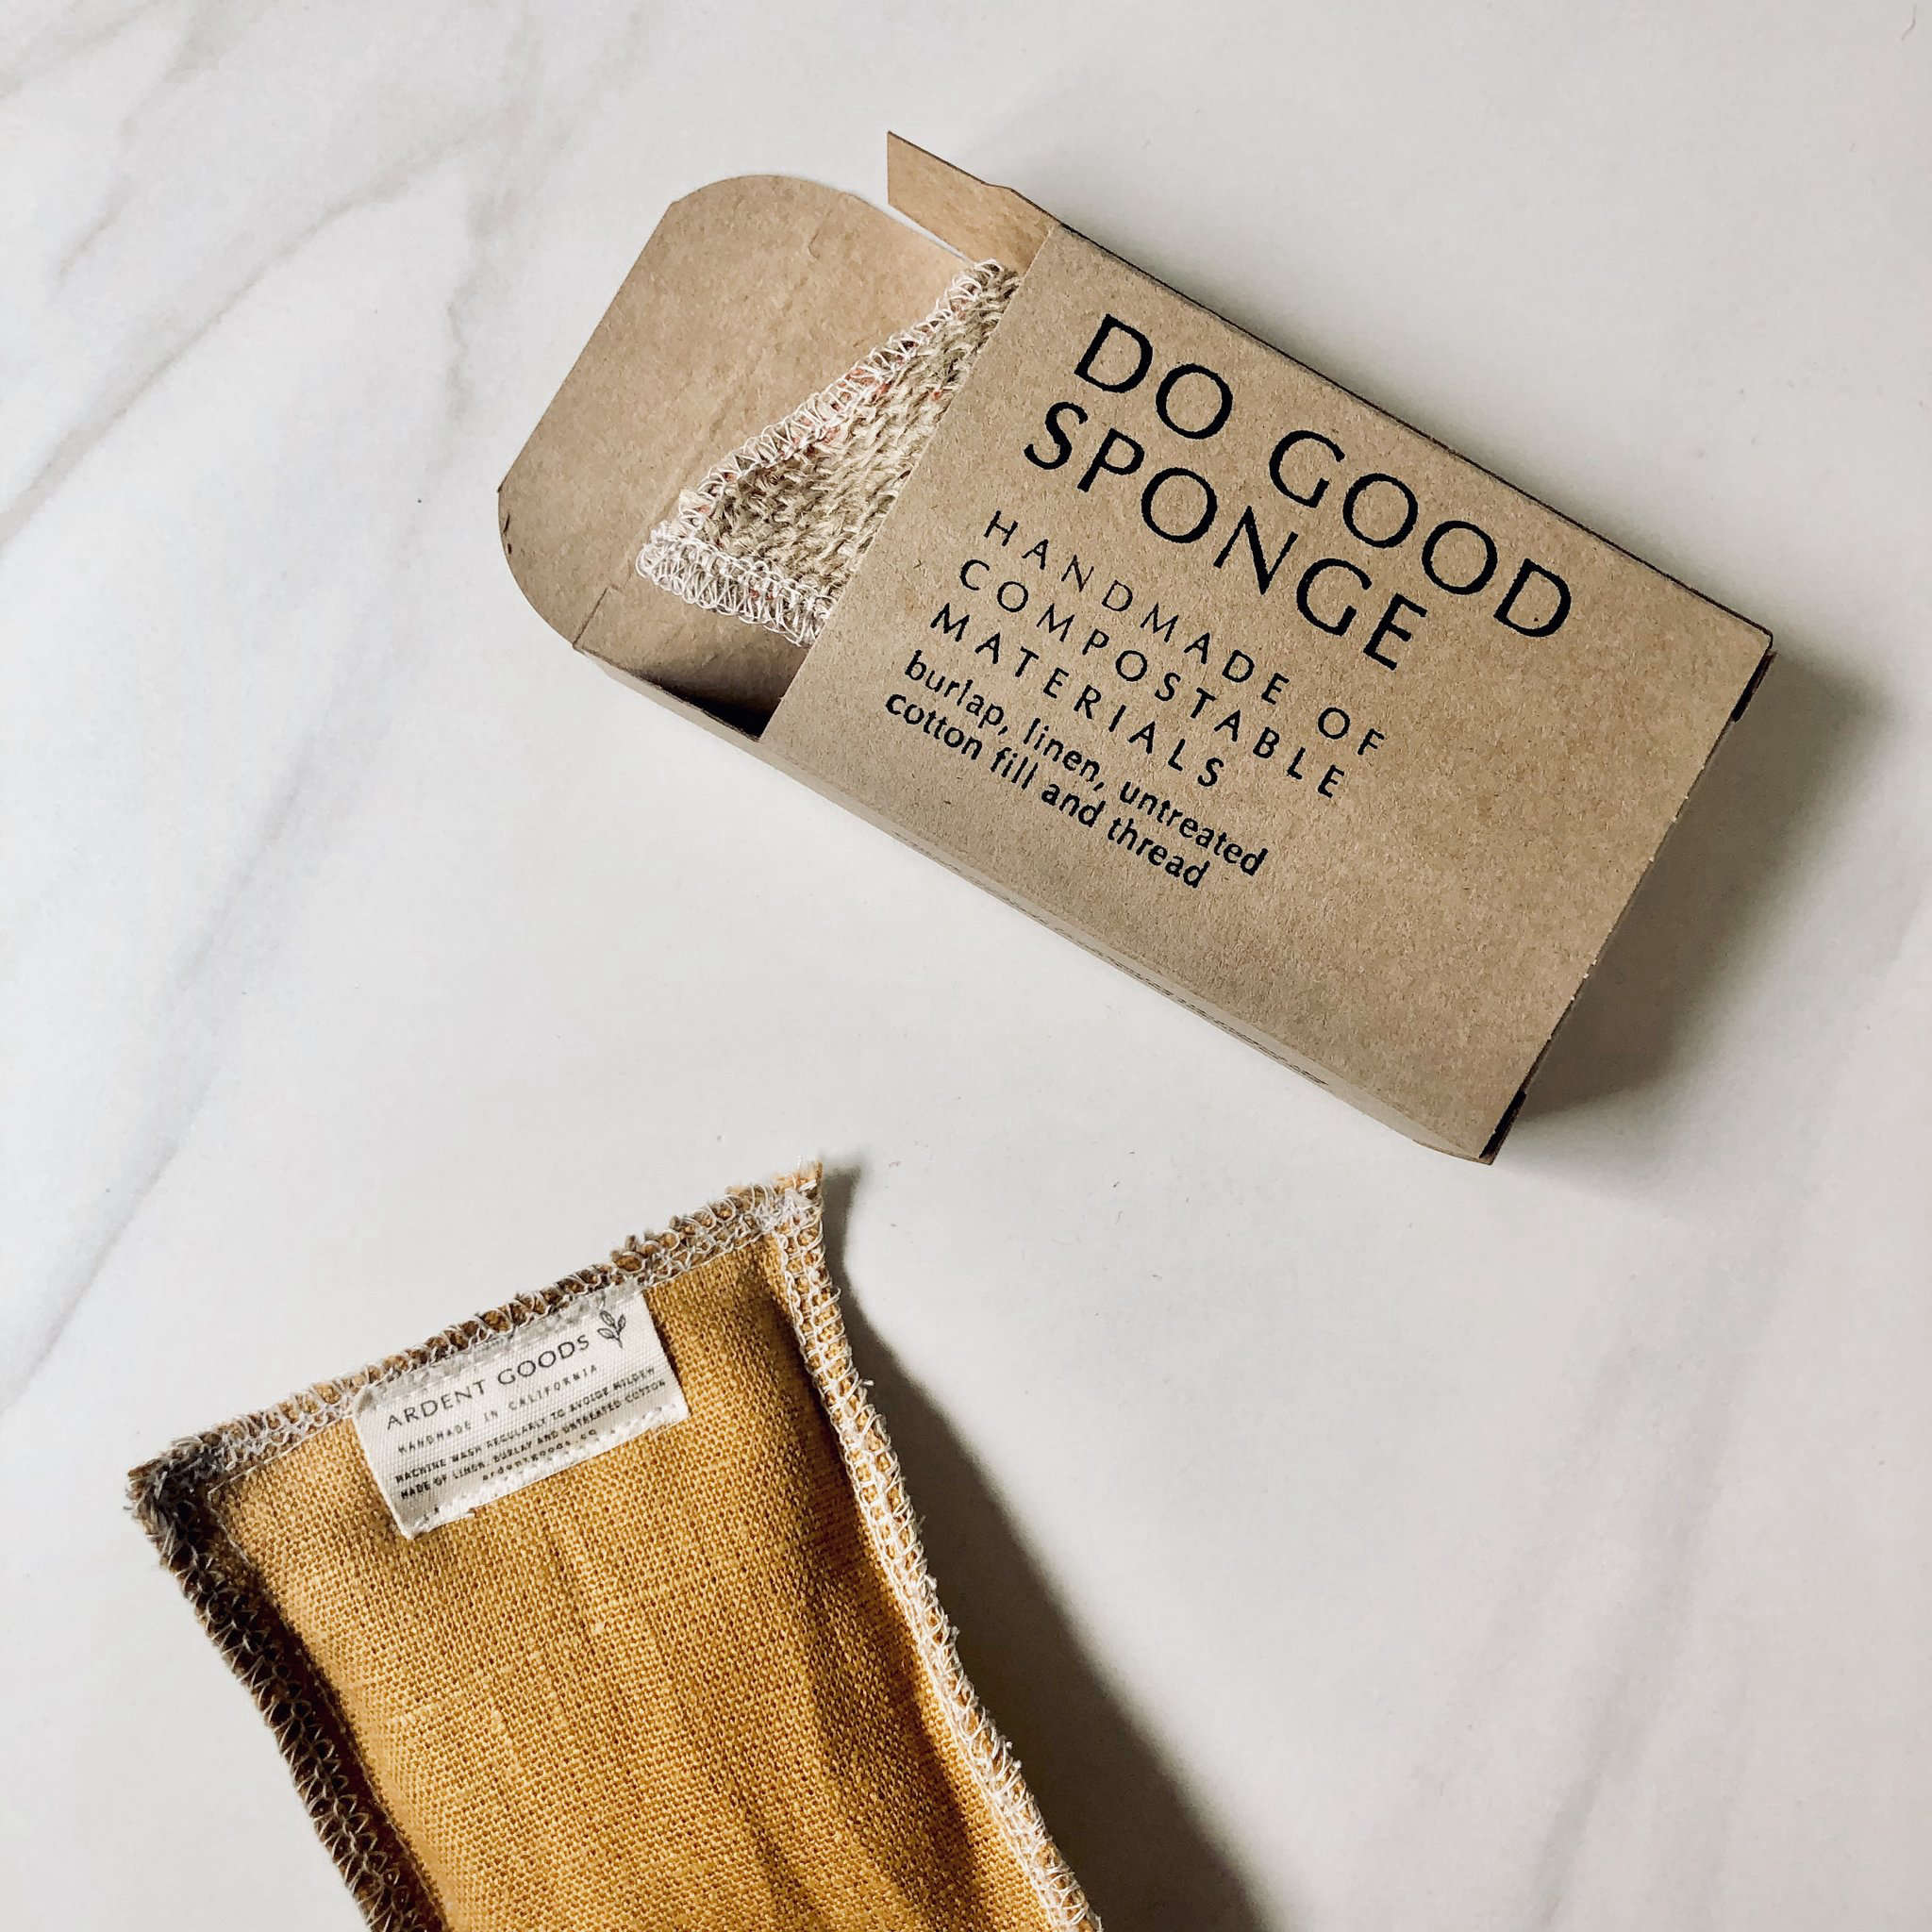 Sustainable Shopping: Eco-Conscious Everyday Goods from a Family-Owned SF Company - The Organized Home